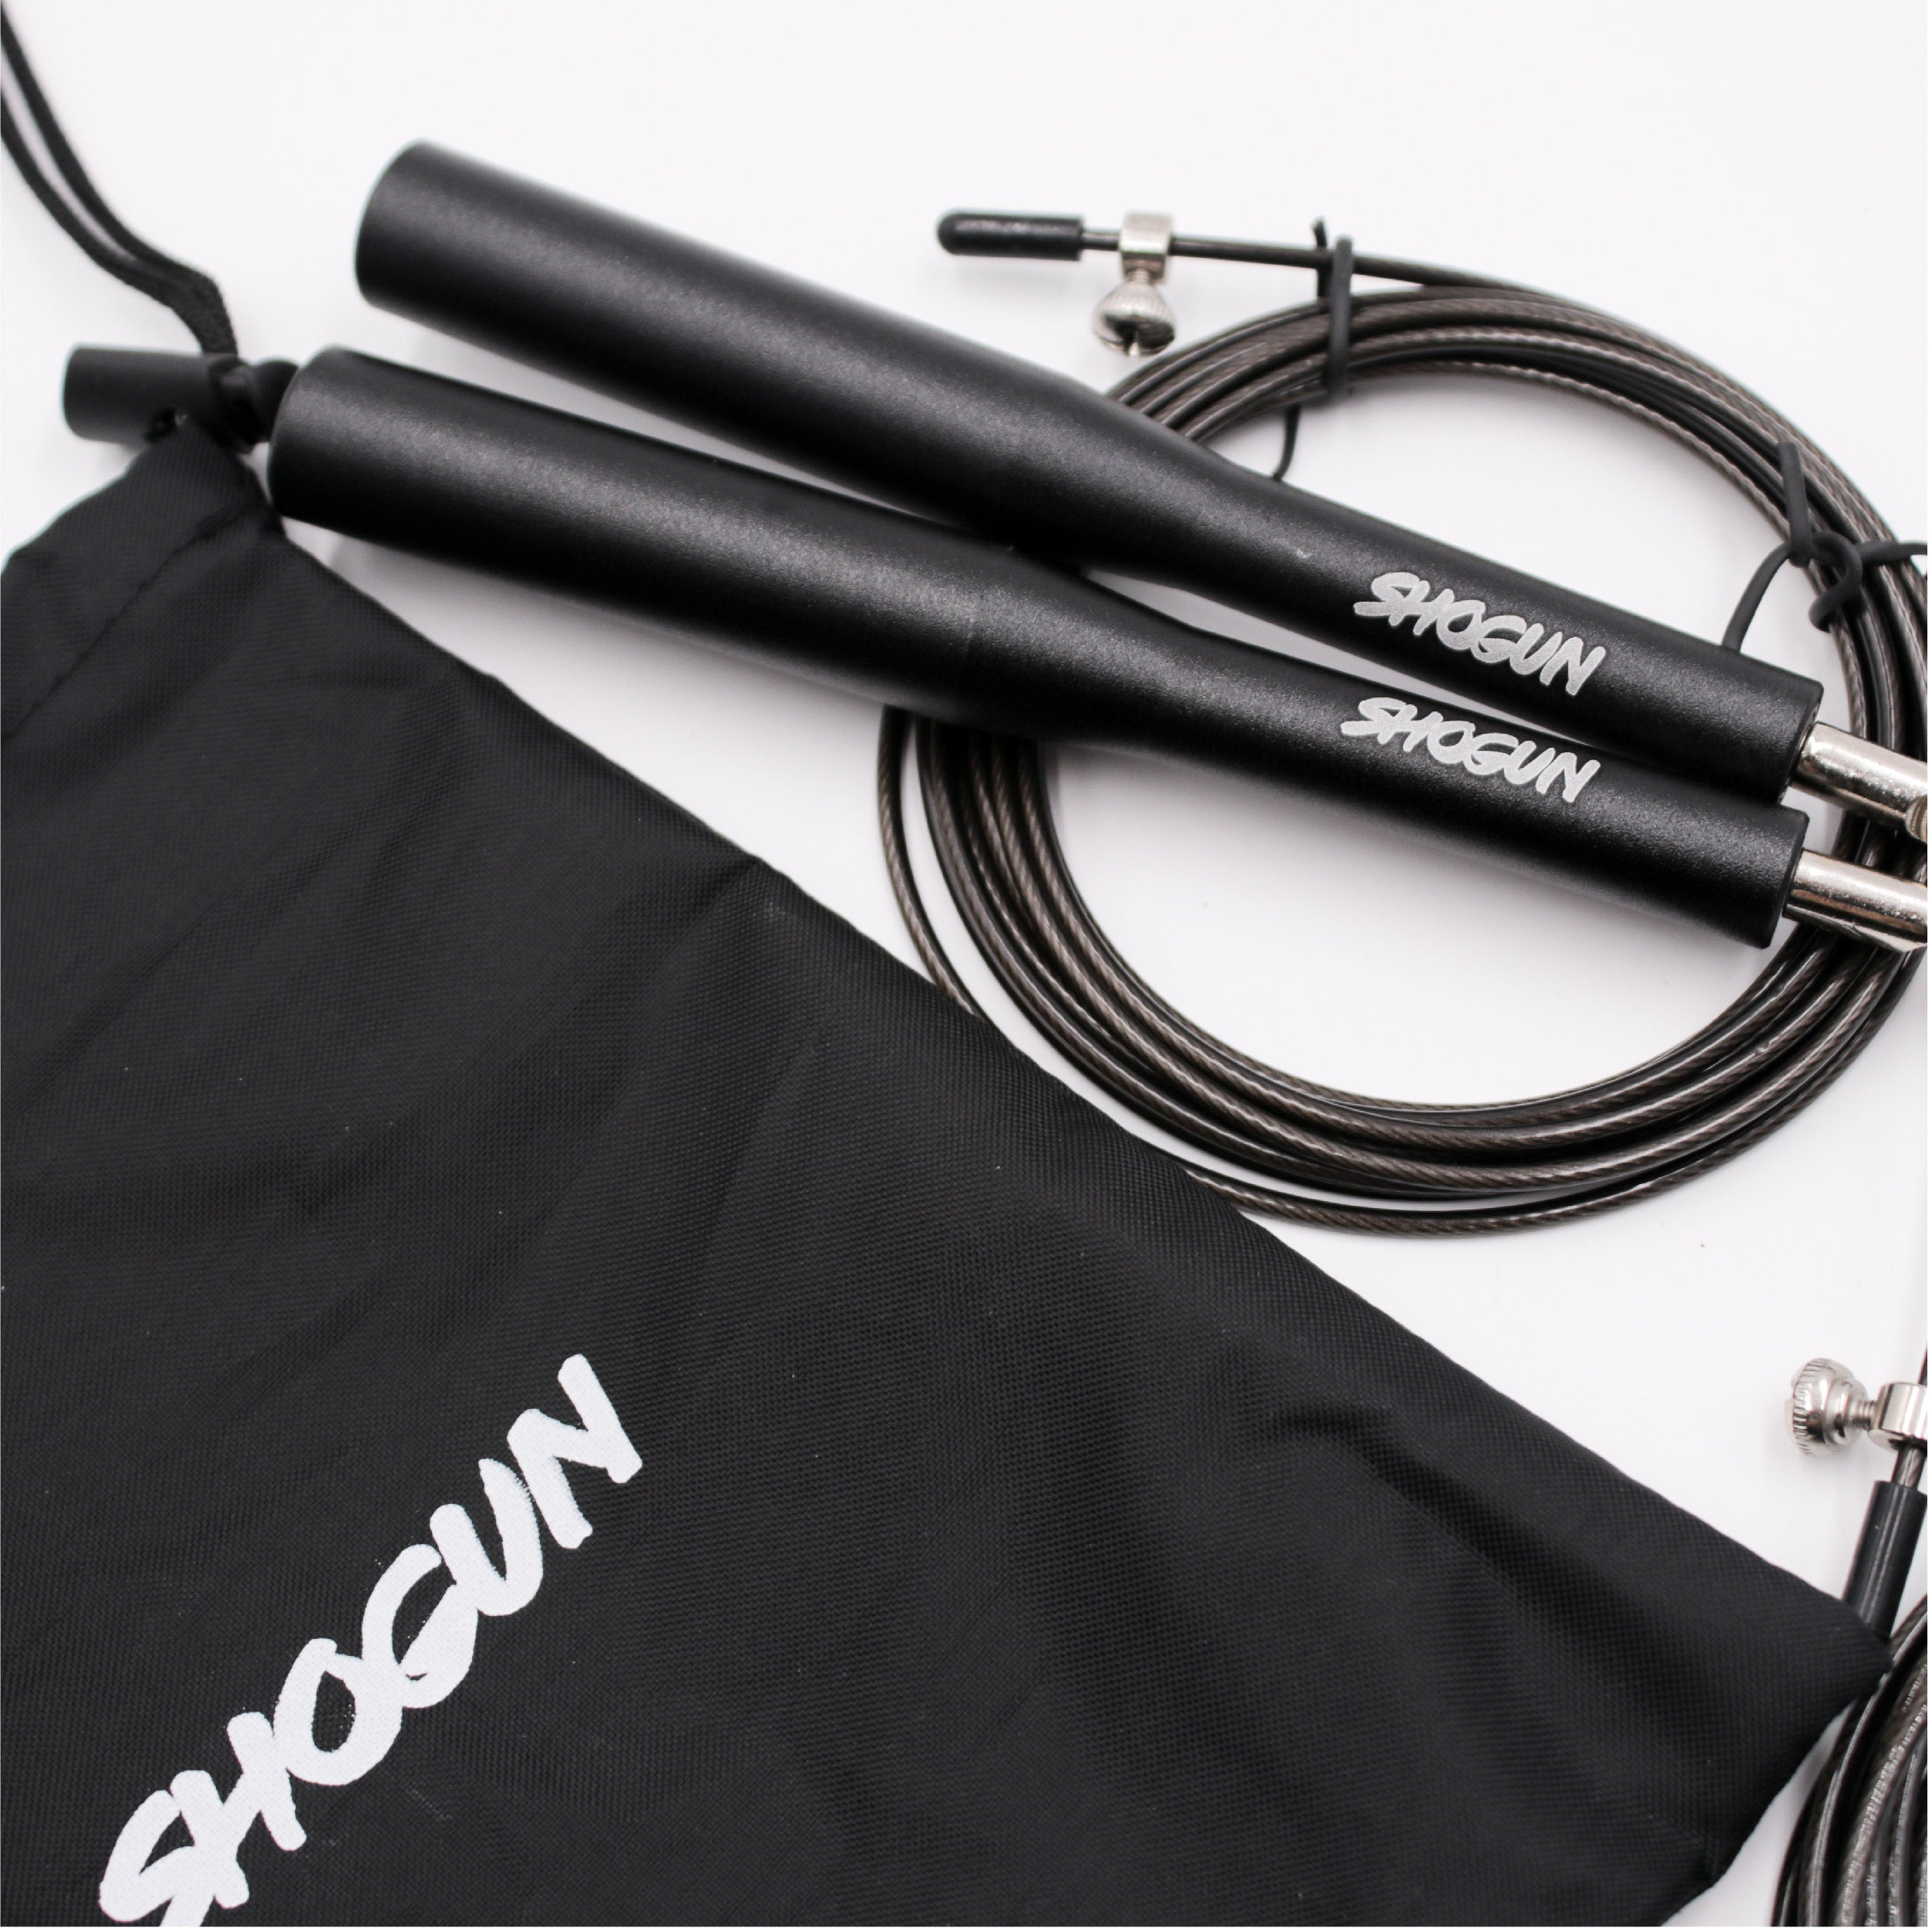 Shogun Sports Speed Jump Rope